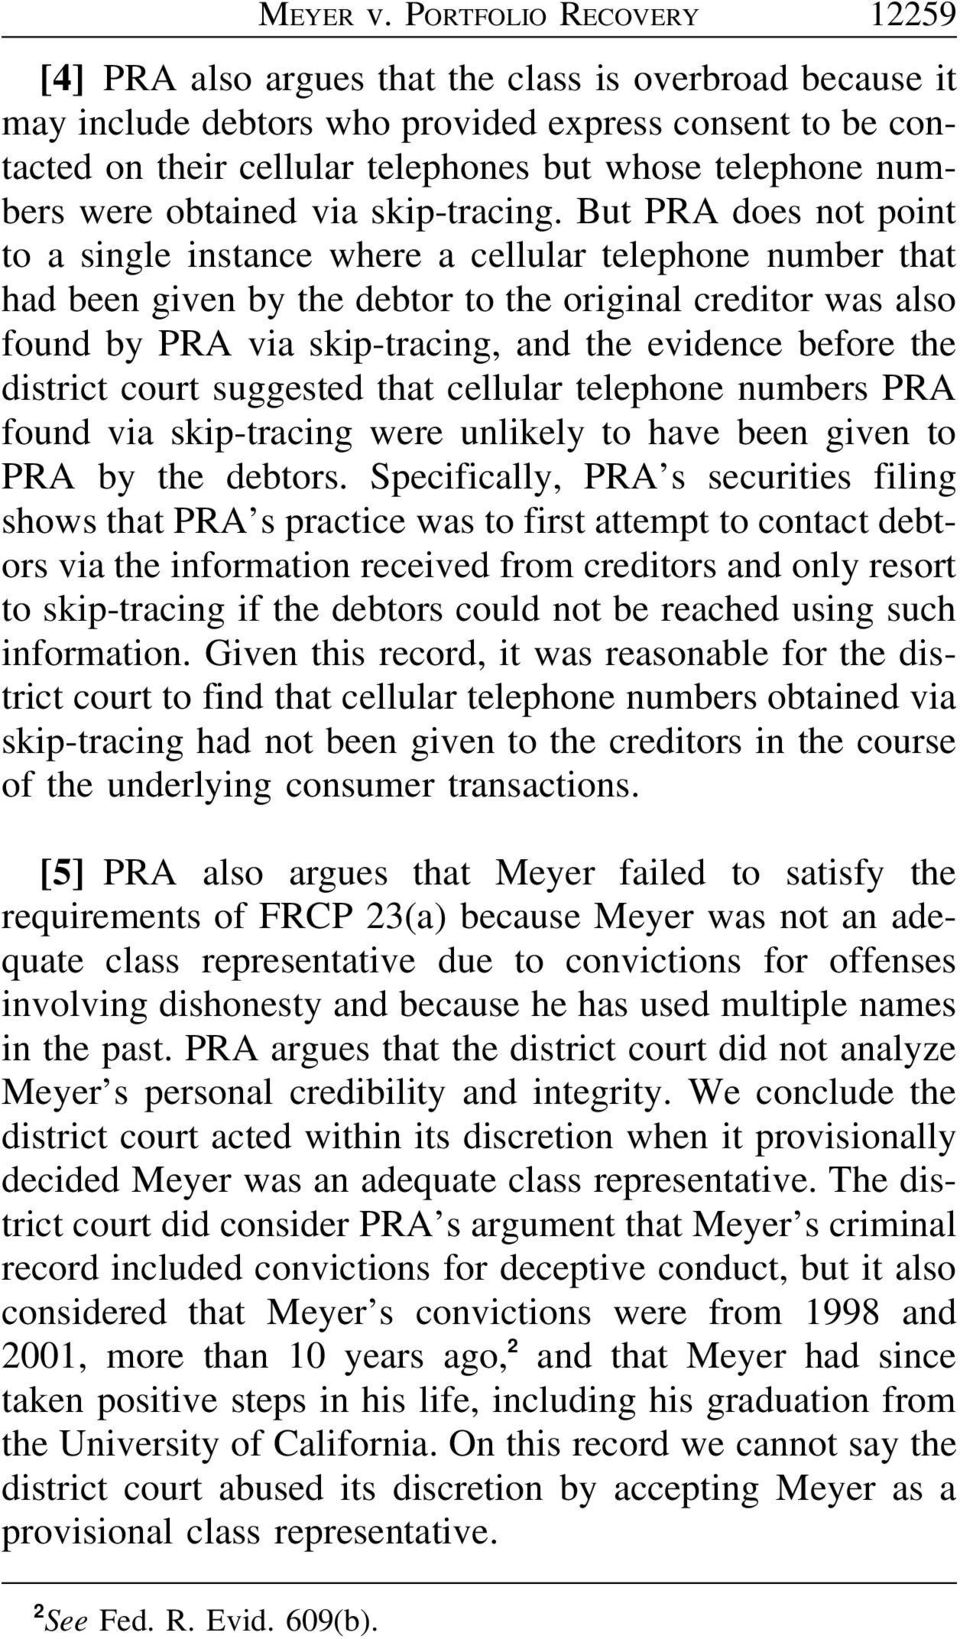 But PRA does not point to a single instance where a cellular telephone number that had been given by the debtor to the original creditor was also found by PRA via skip-tracing, and the evidence